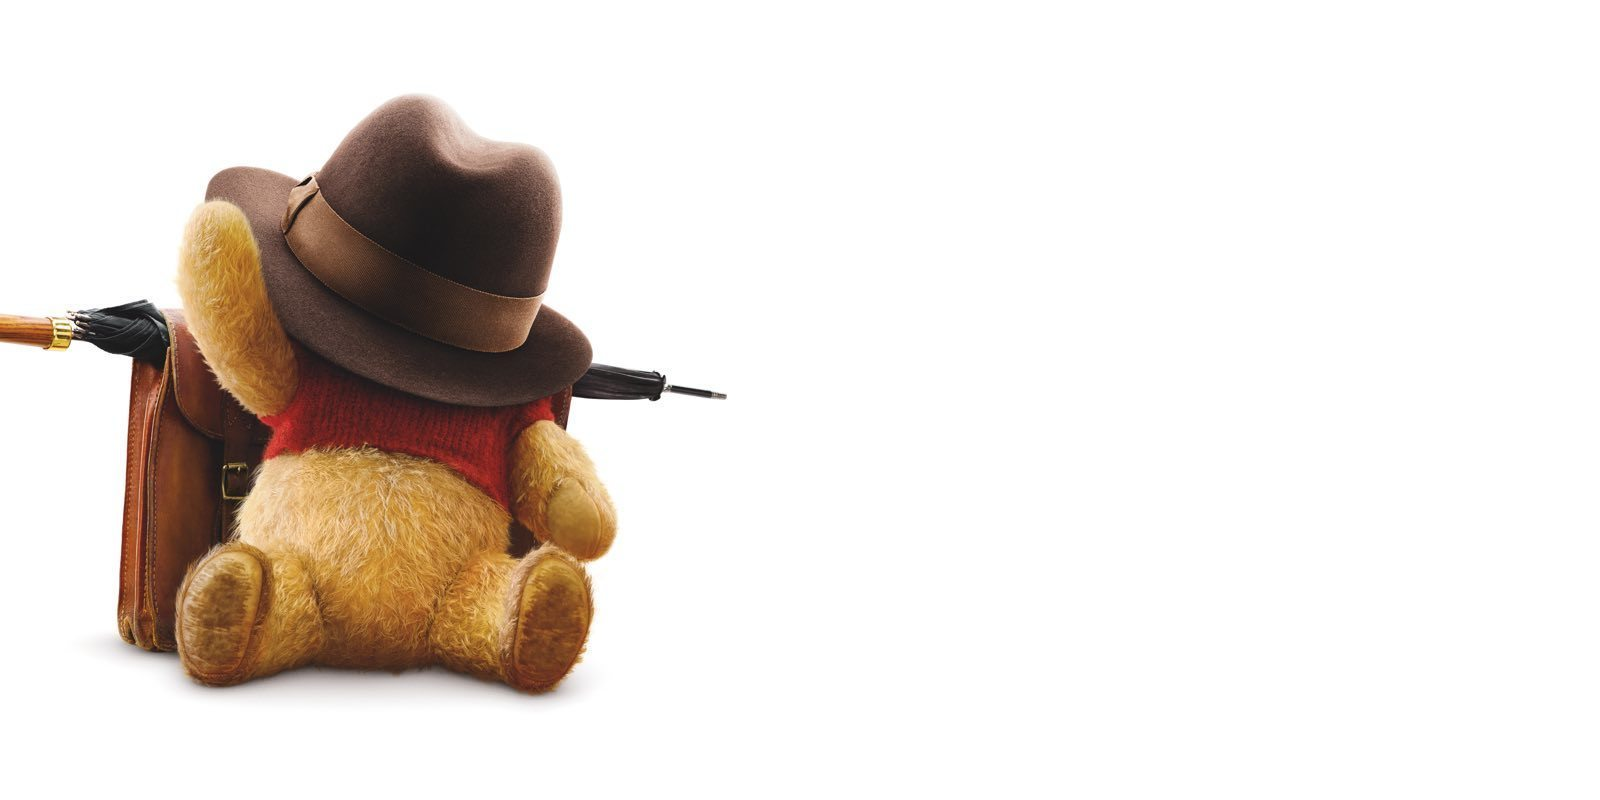 Christopher Robin | Synopsis